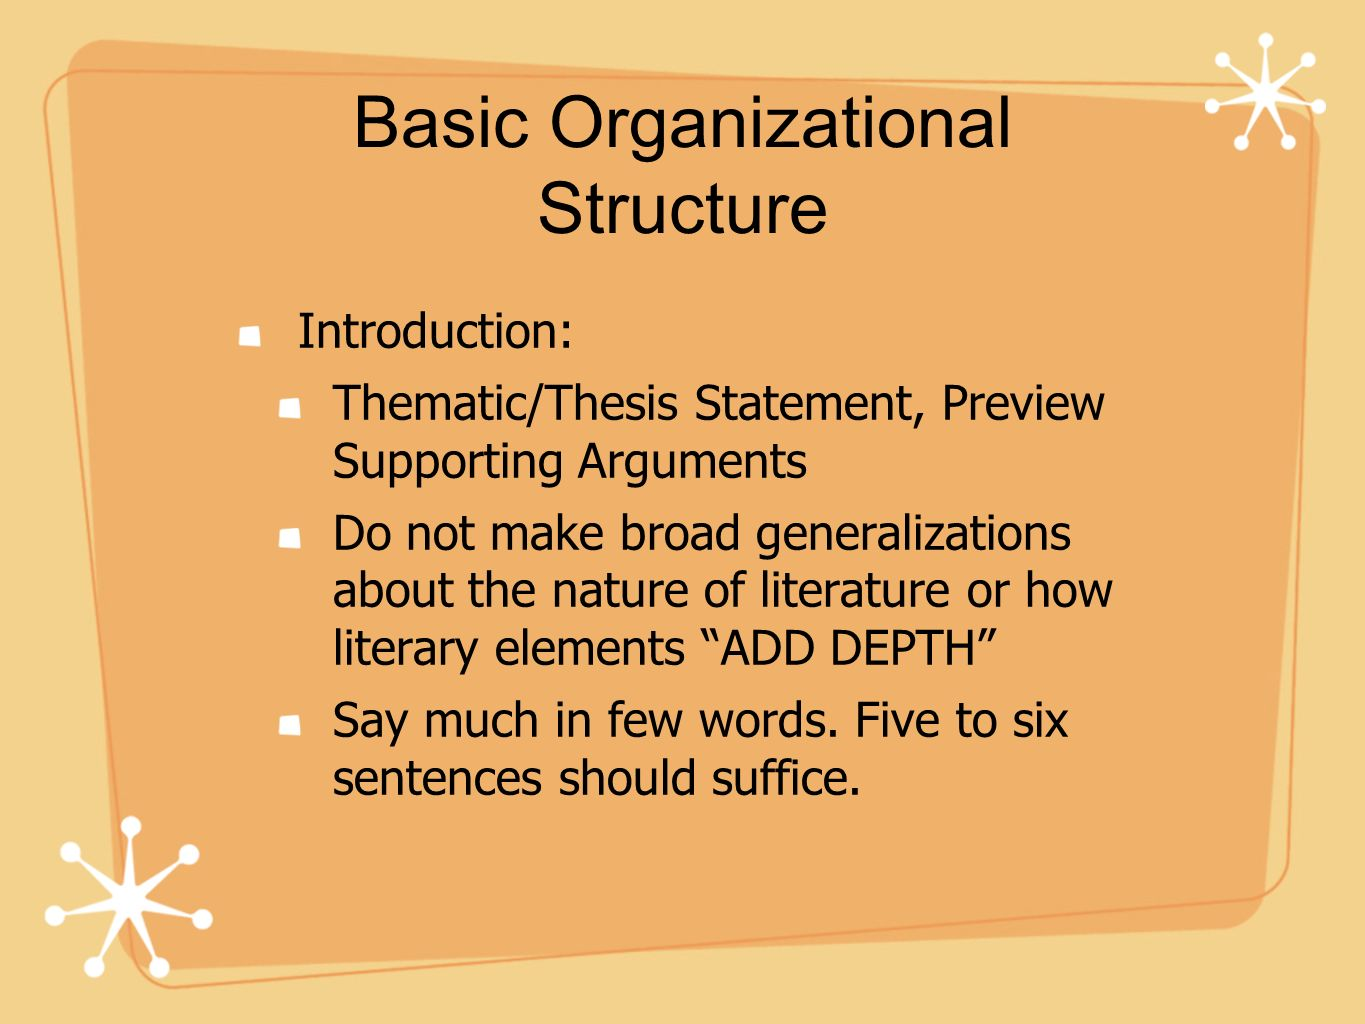 Basic Organizational Structure